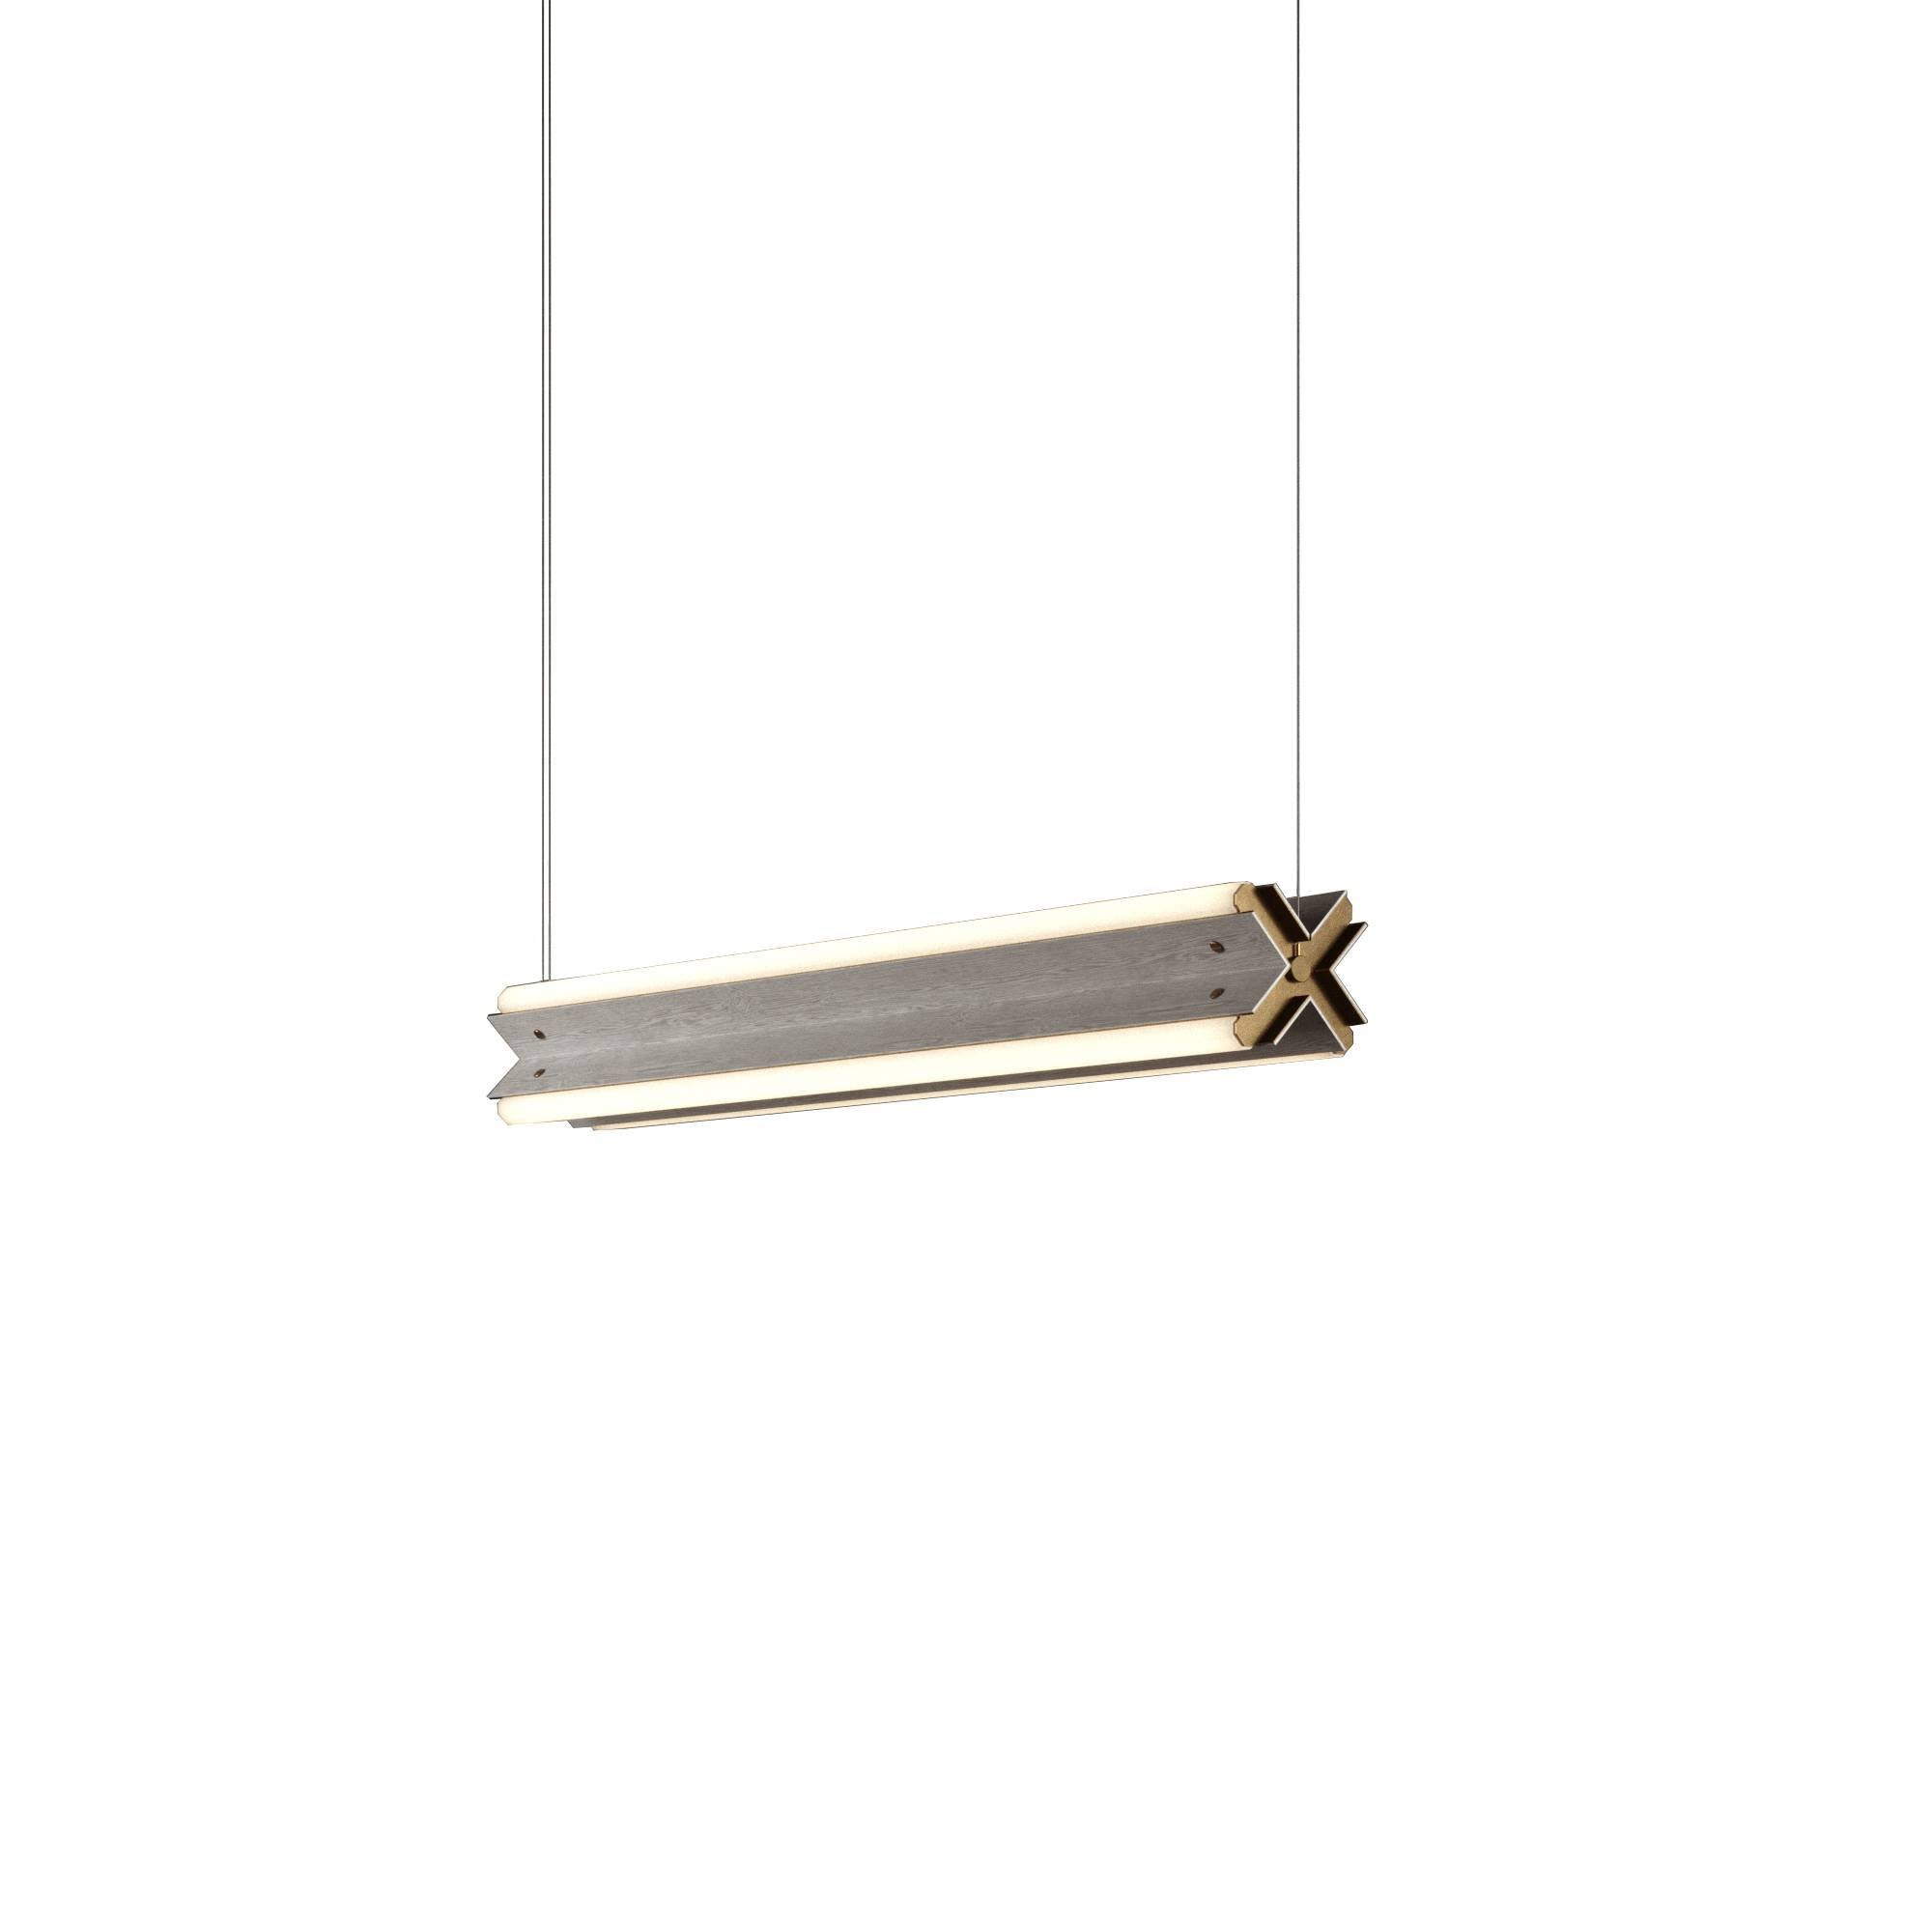 "Axis X Suspension Light: 36"" + Grey Stained Ash + Horizontal"